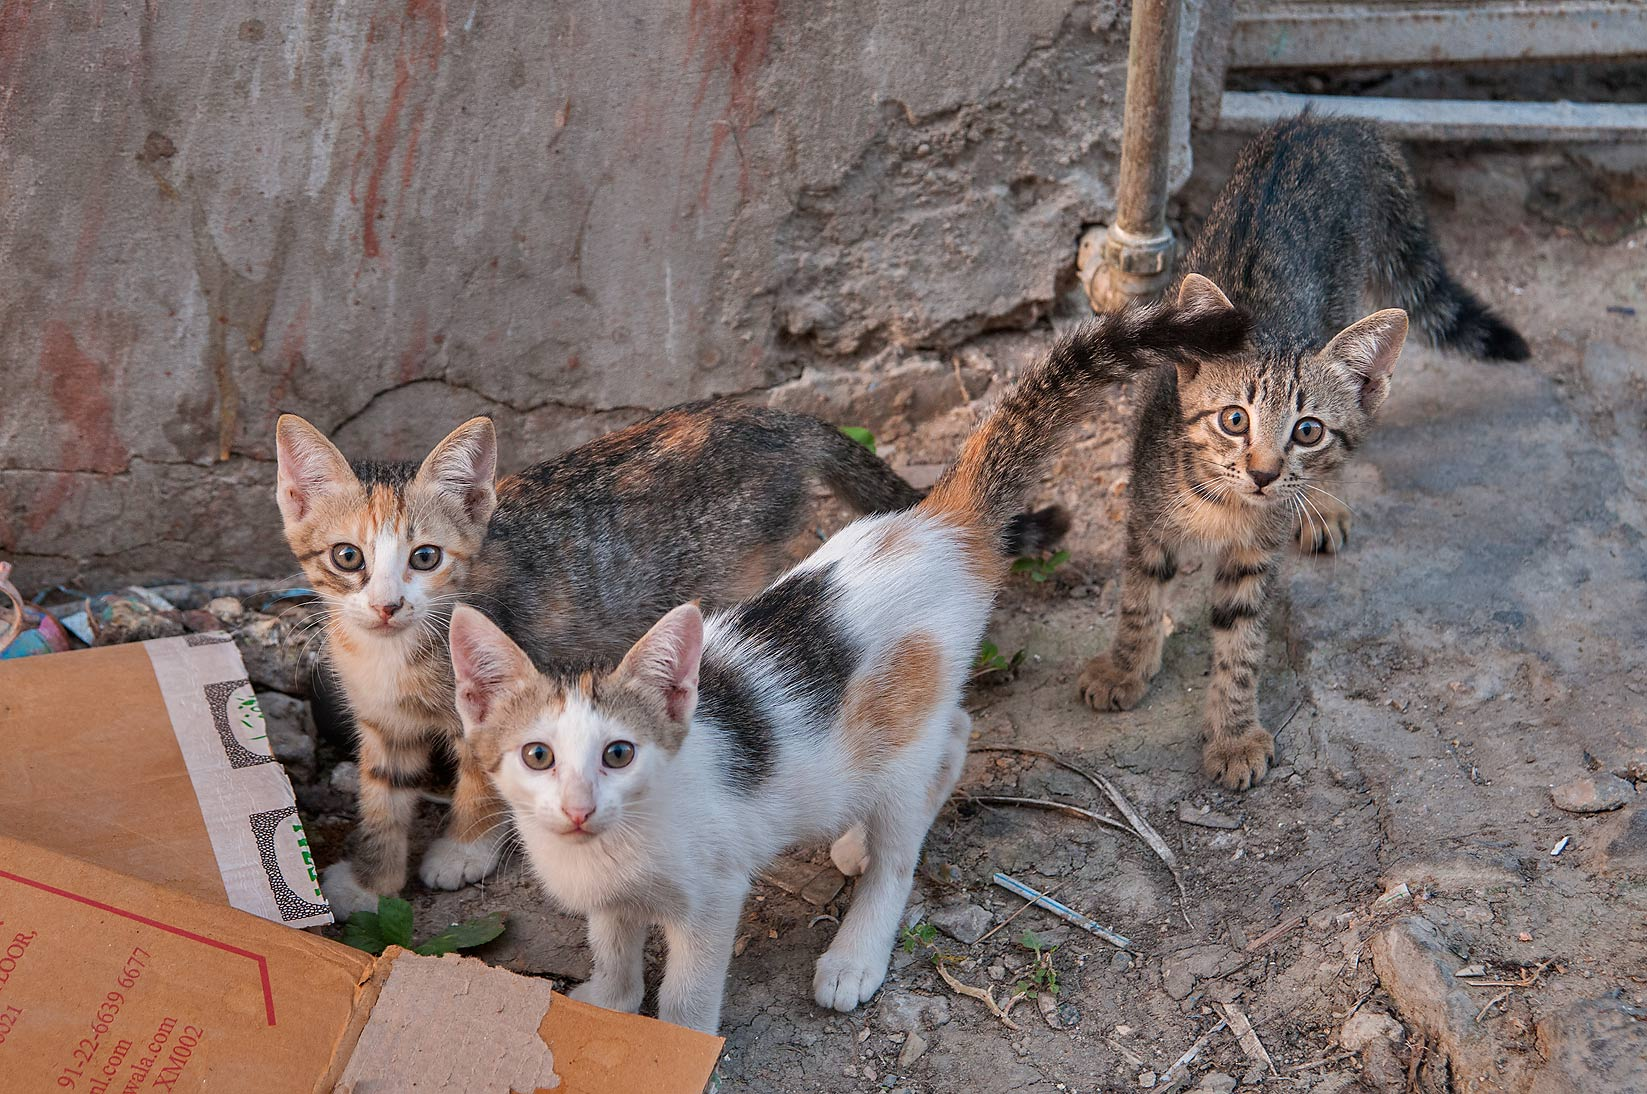 Family of cats at Sikkat Al Inshirah, Musheirib area. Doha, Qatar